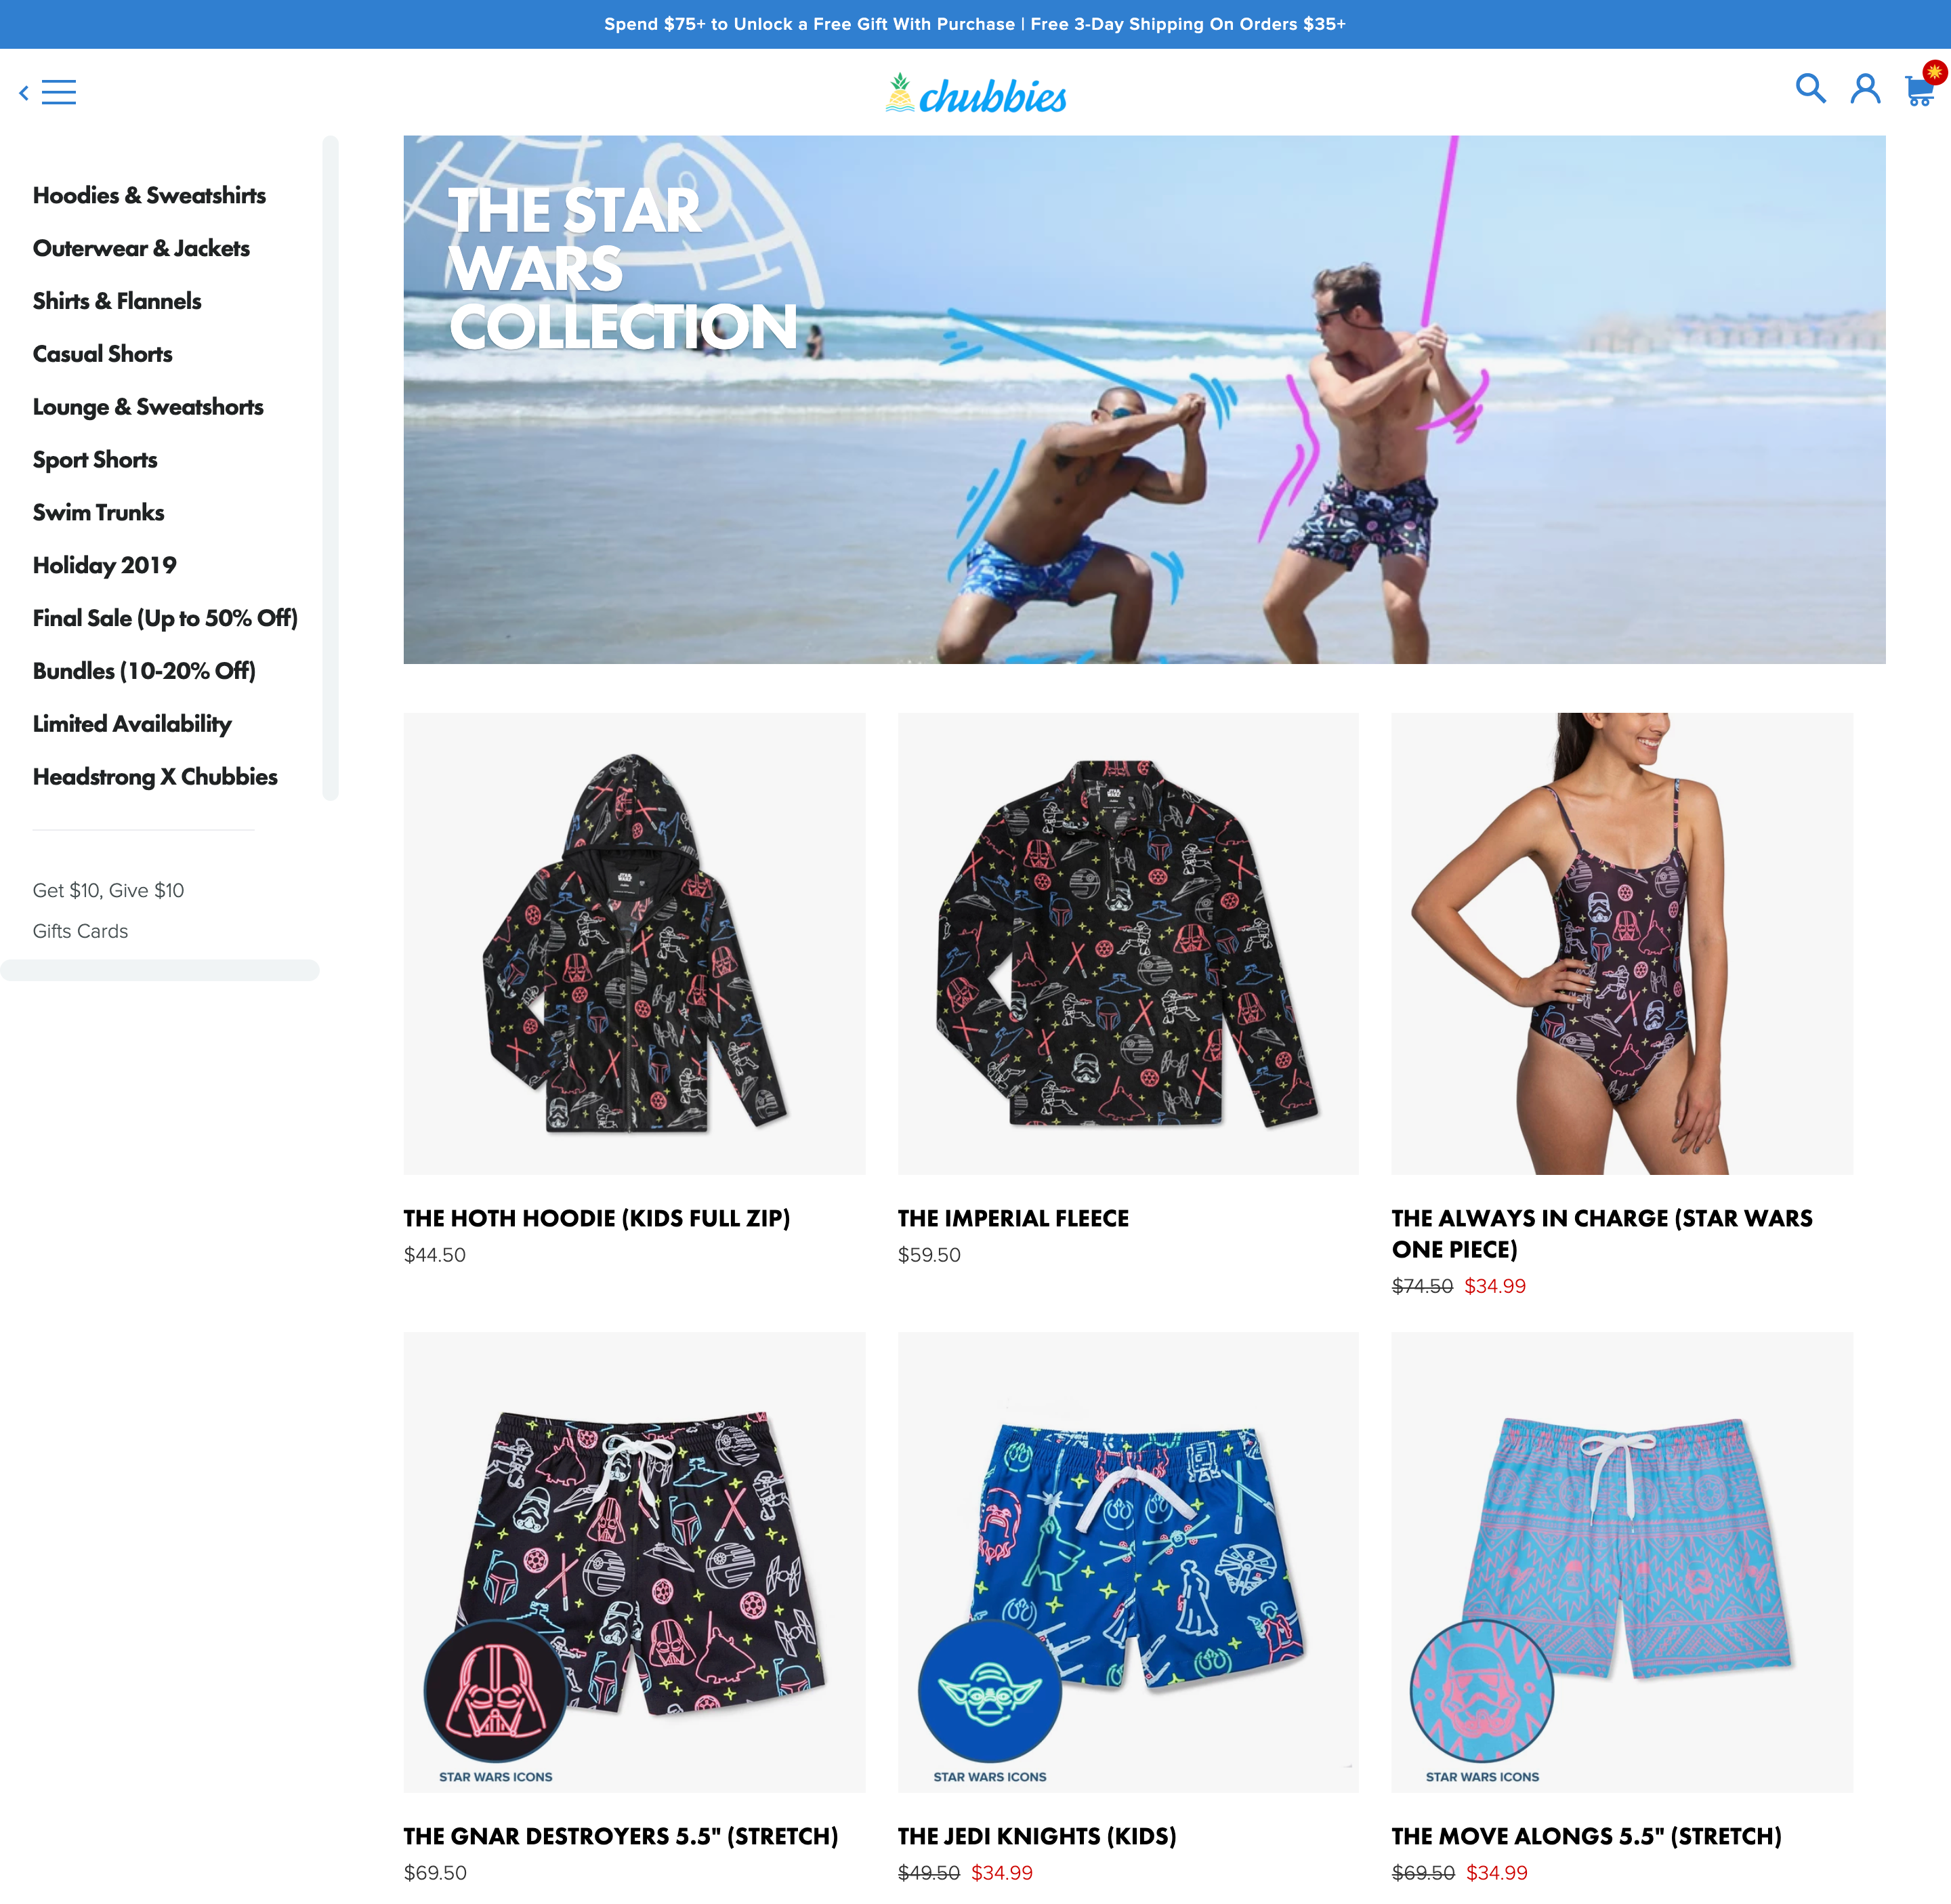 Collaborative Marketing Chubbies Star Wars Collection